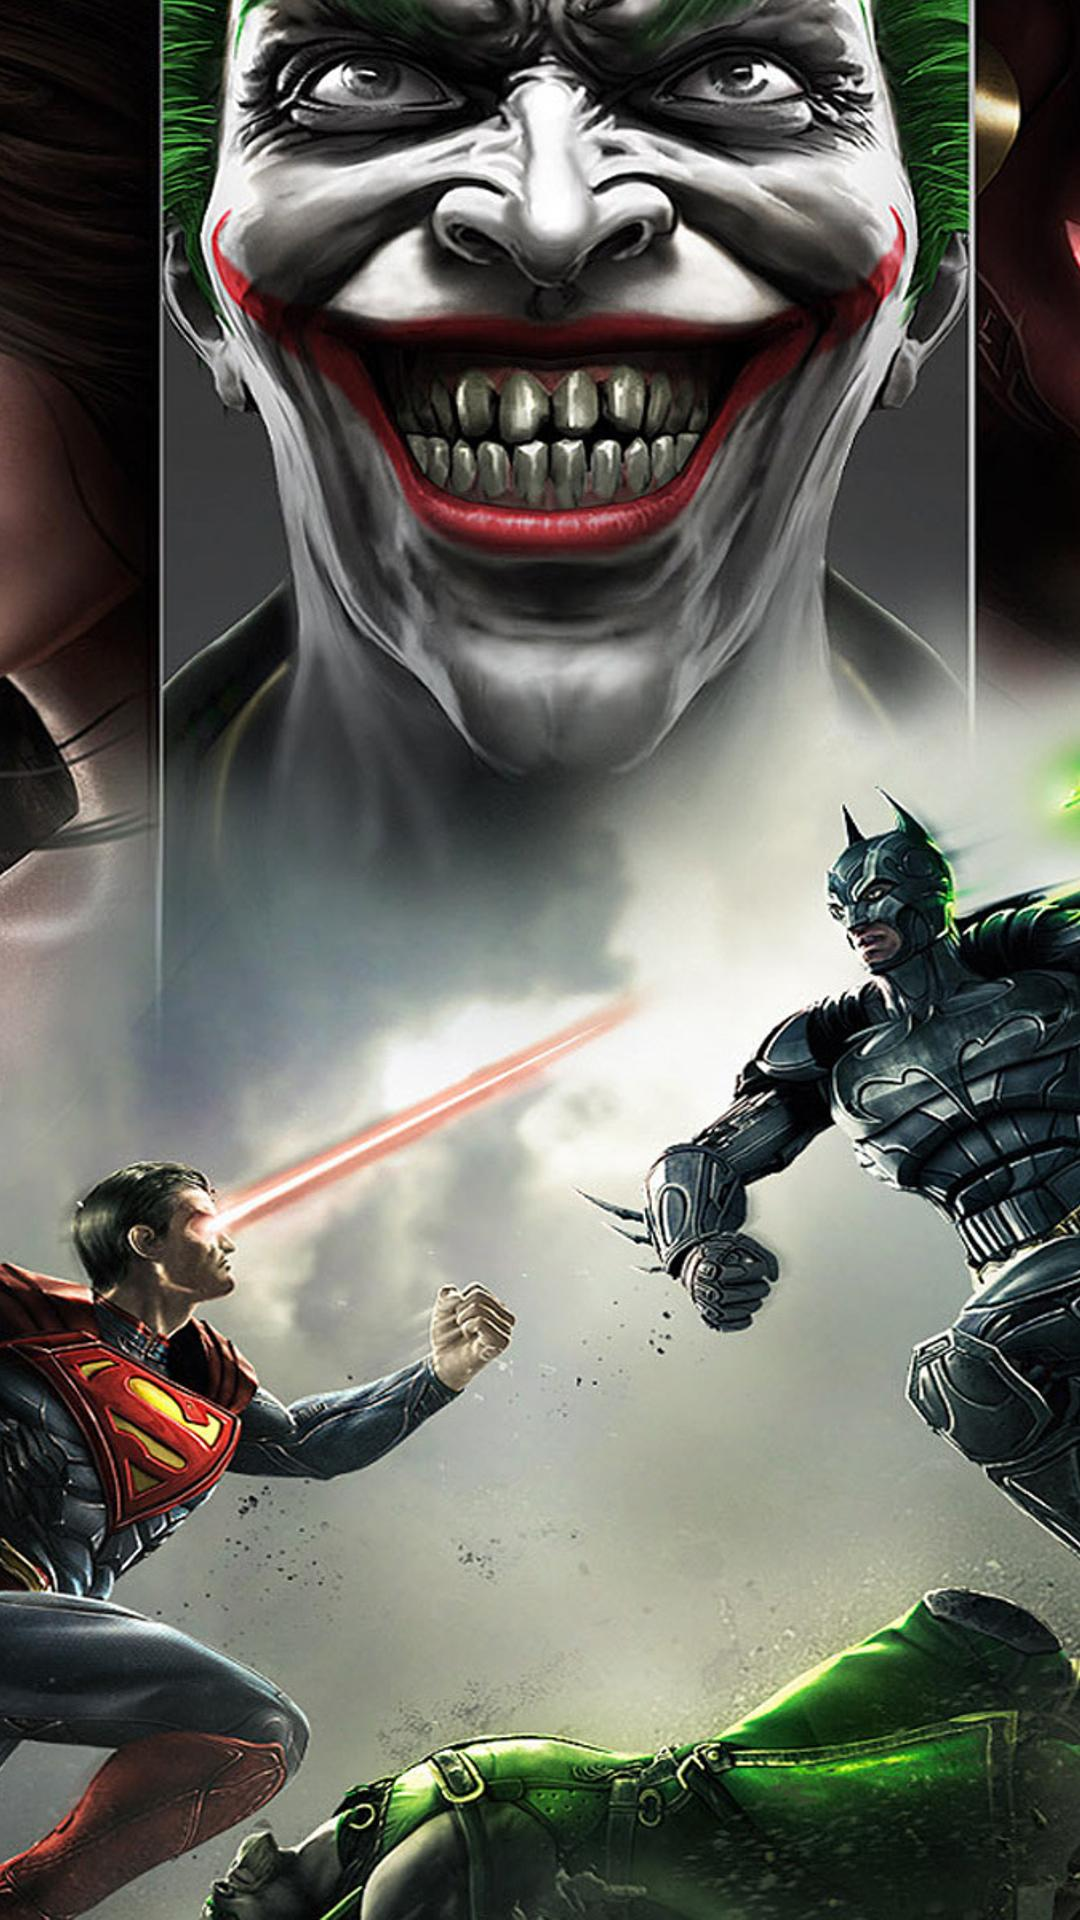 injustice: gods among us ps3 game hd wallpaper download 1080x1920